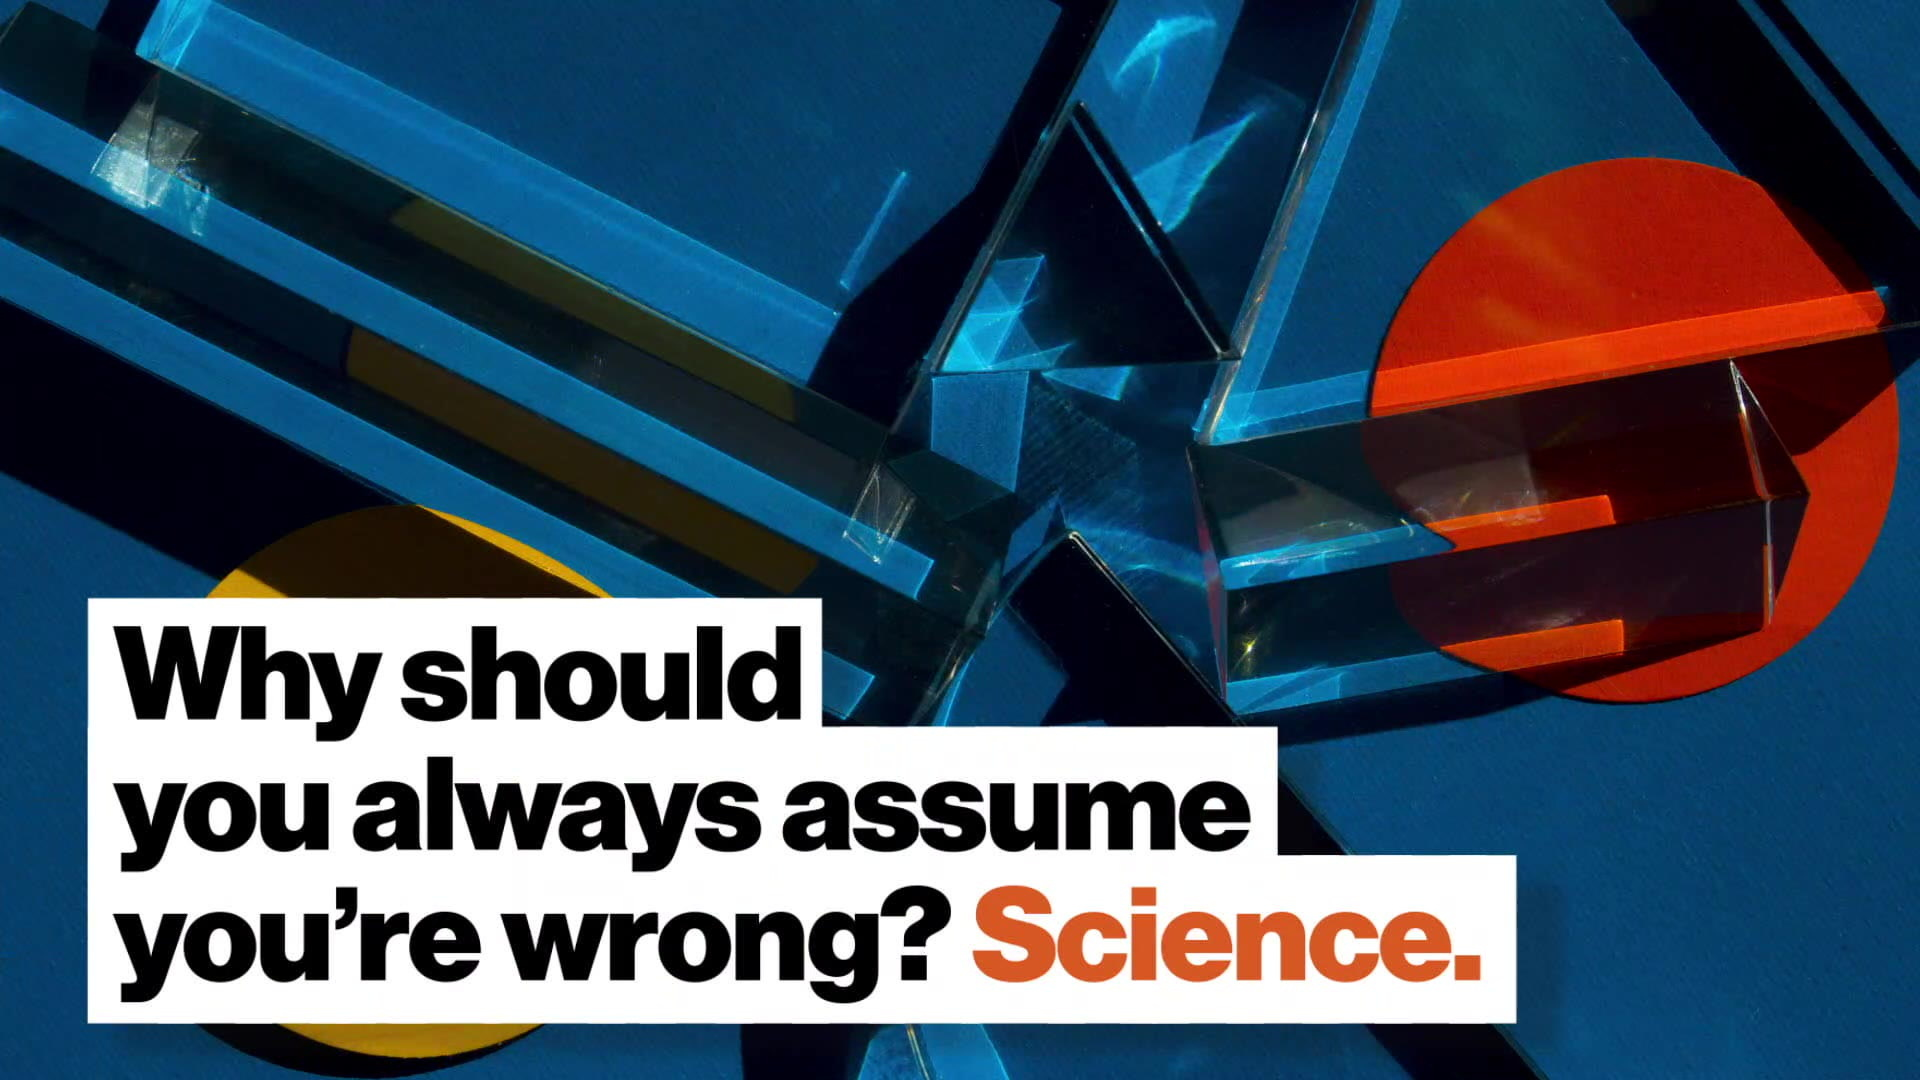 Why should you always assume you re wrong? Science.